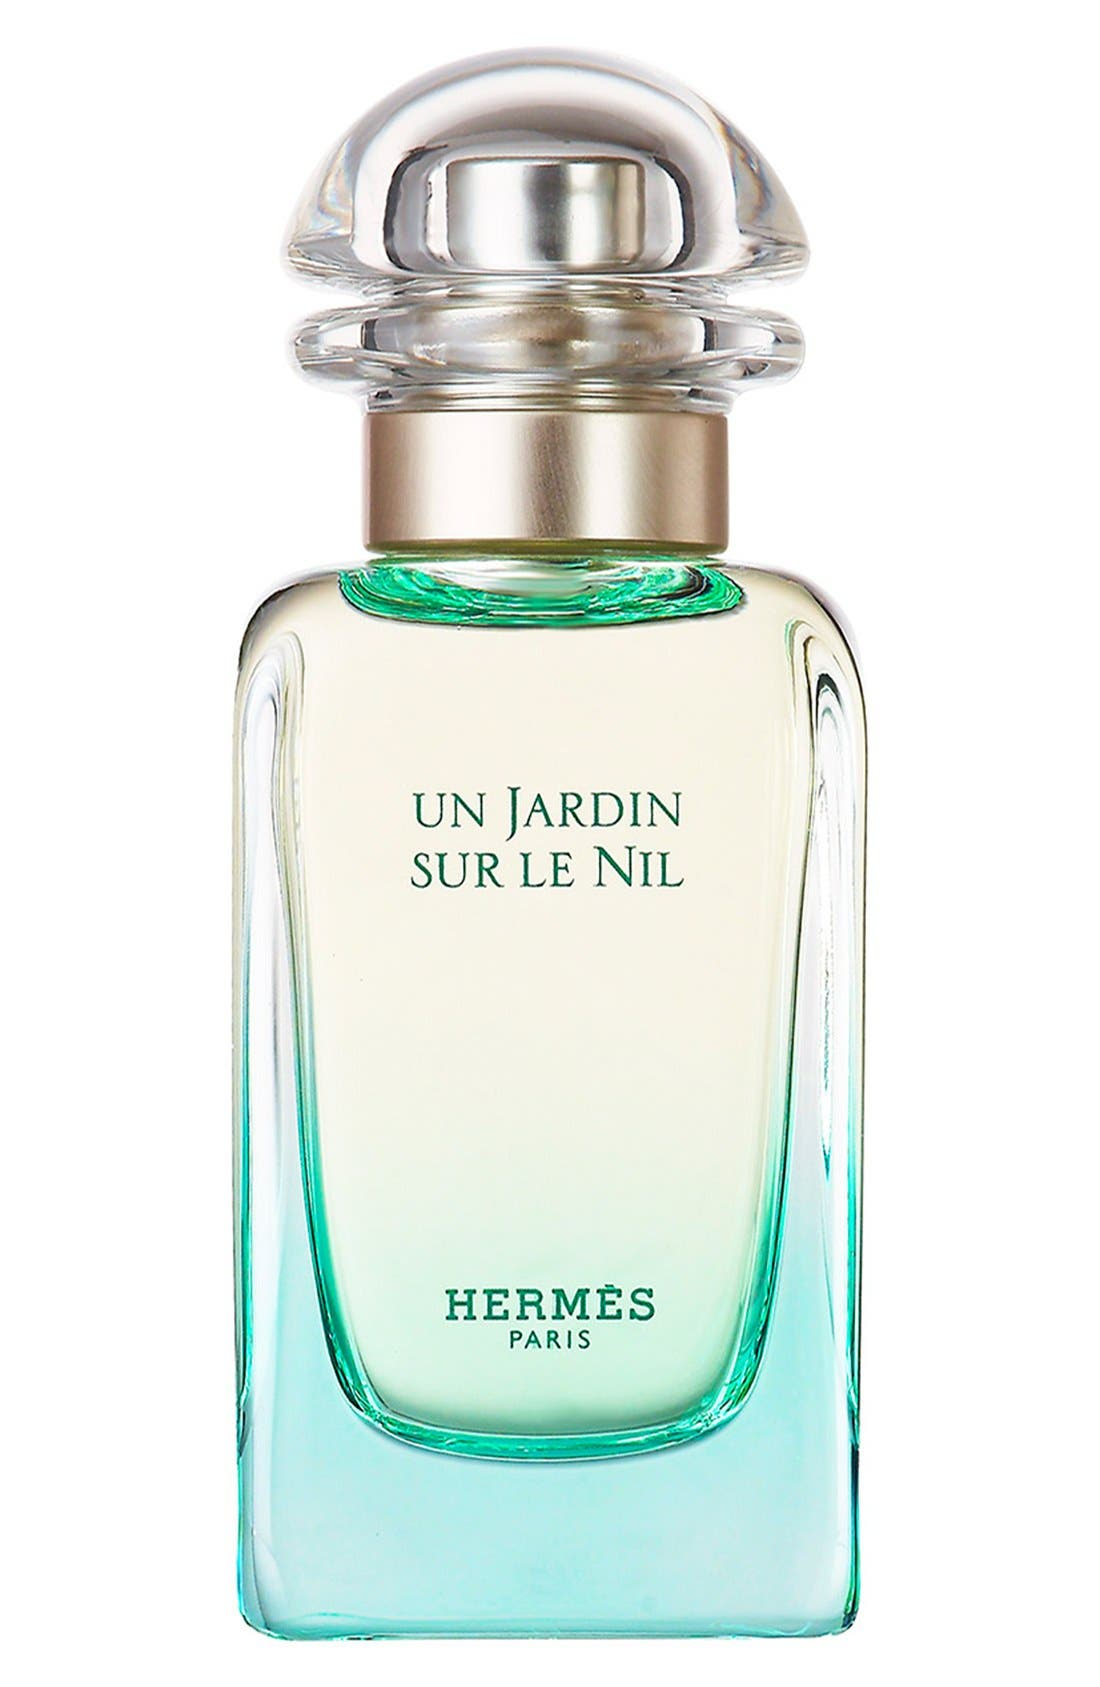 Un Jardin sur le Nil - Eau de toilette,                             Alternate thumbnail 2, color,                             NO COLOR